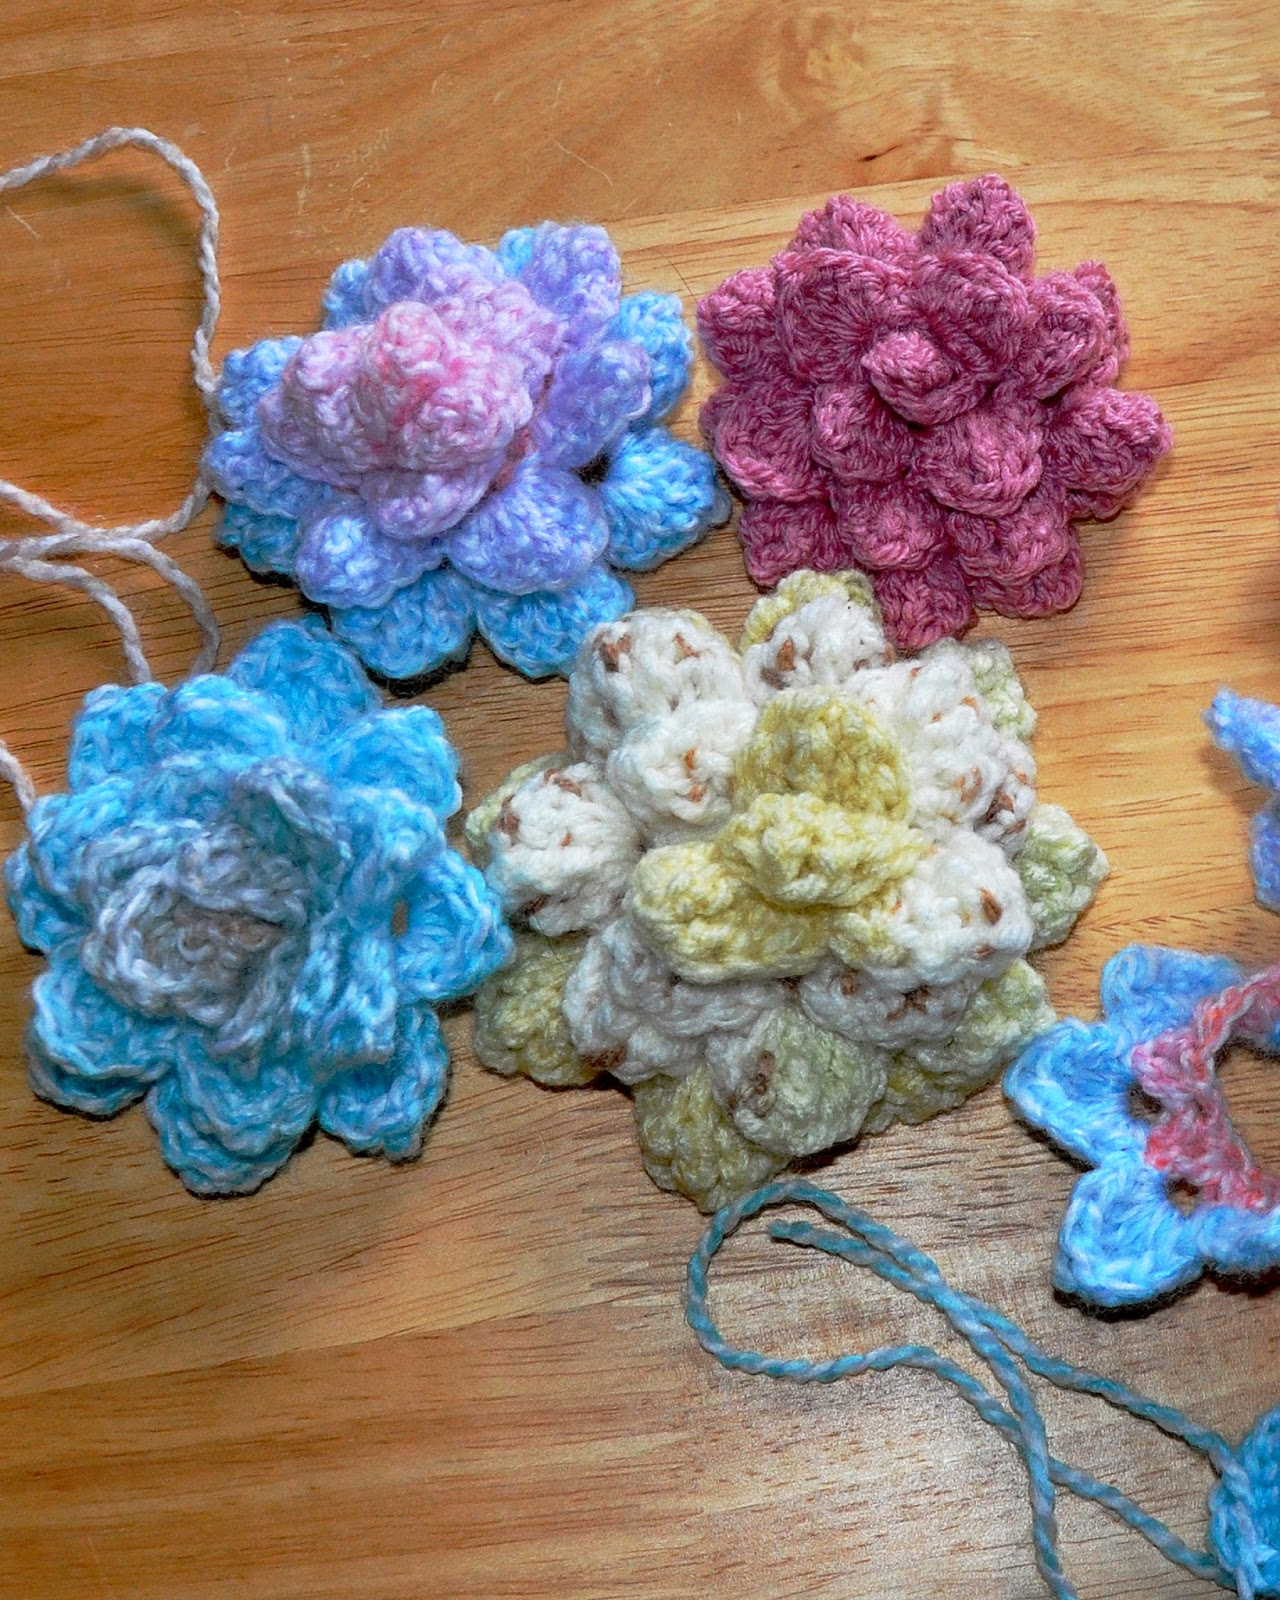 roll-up crochet flowers